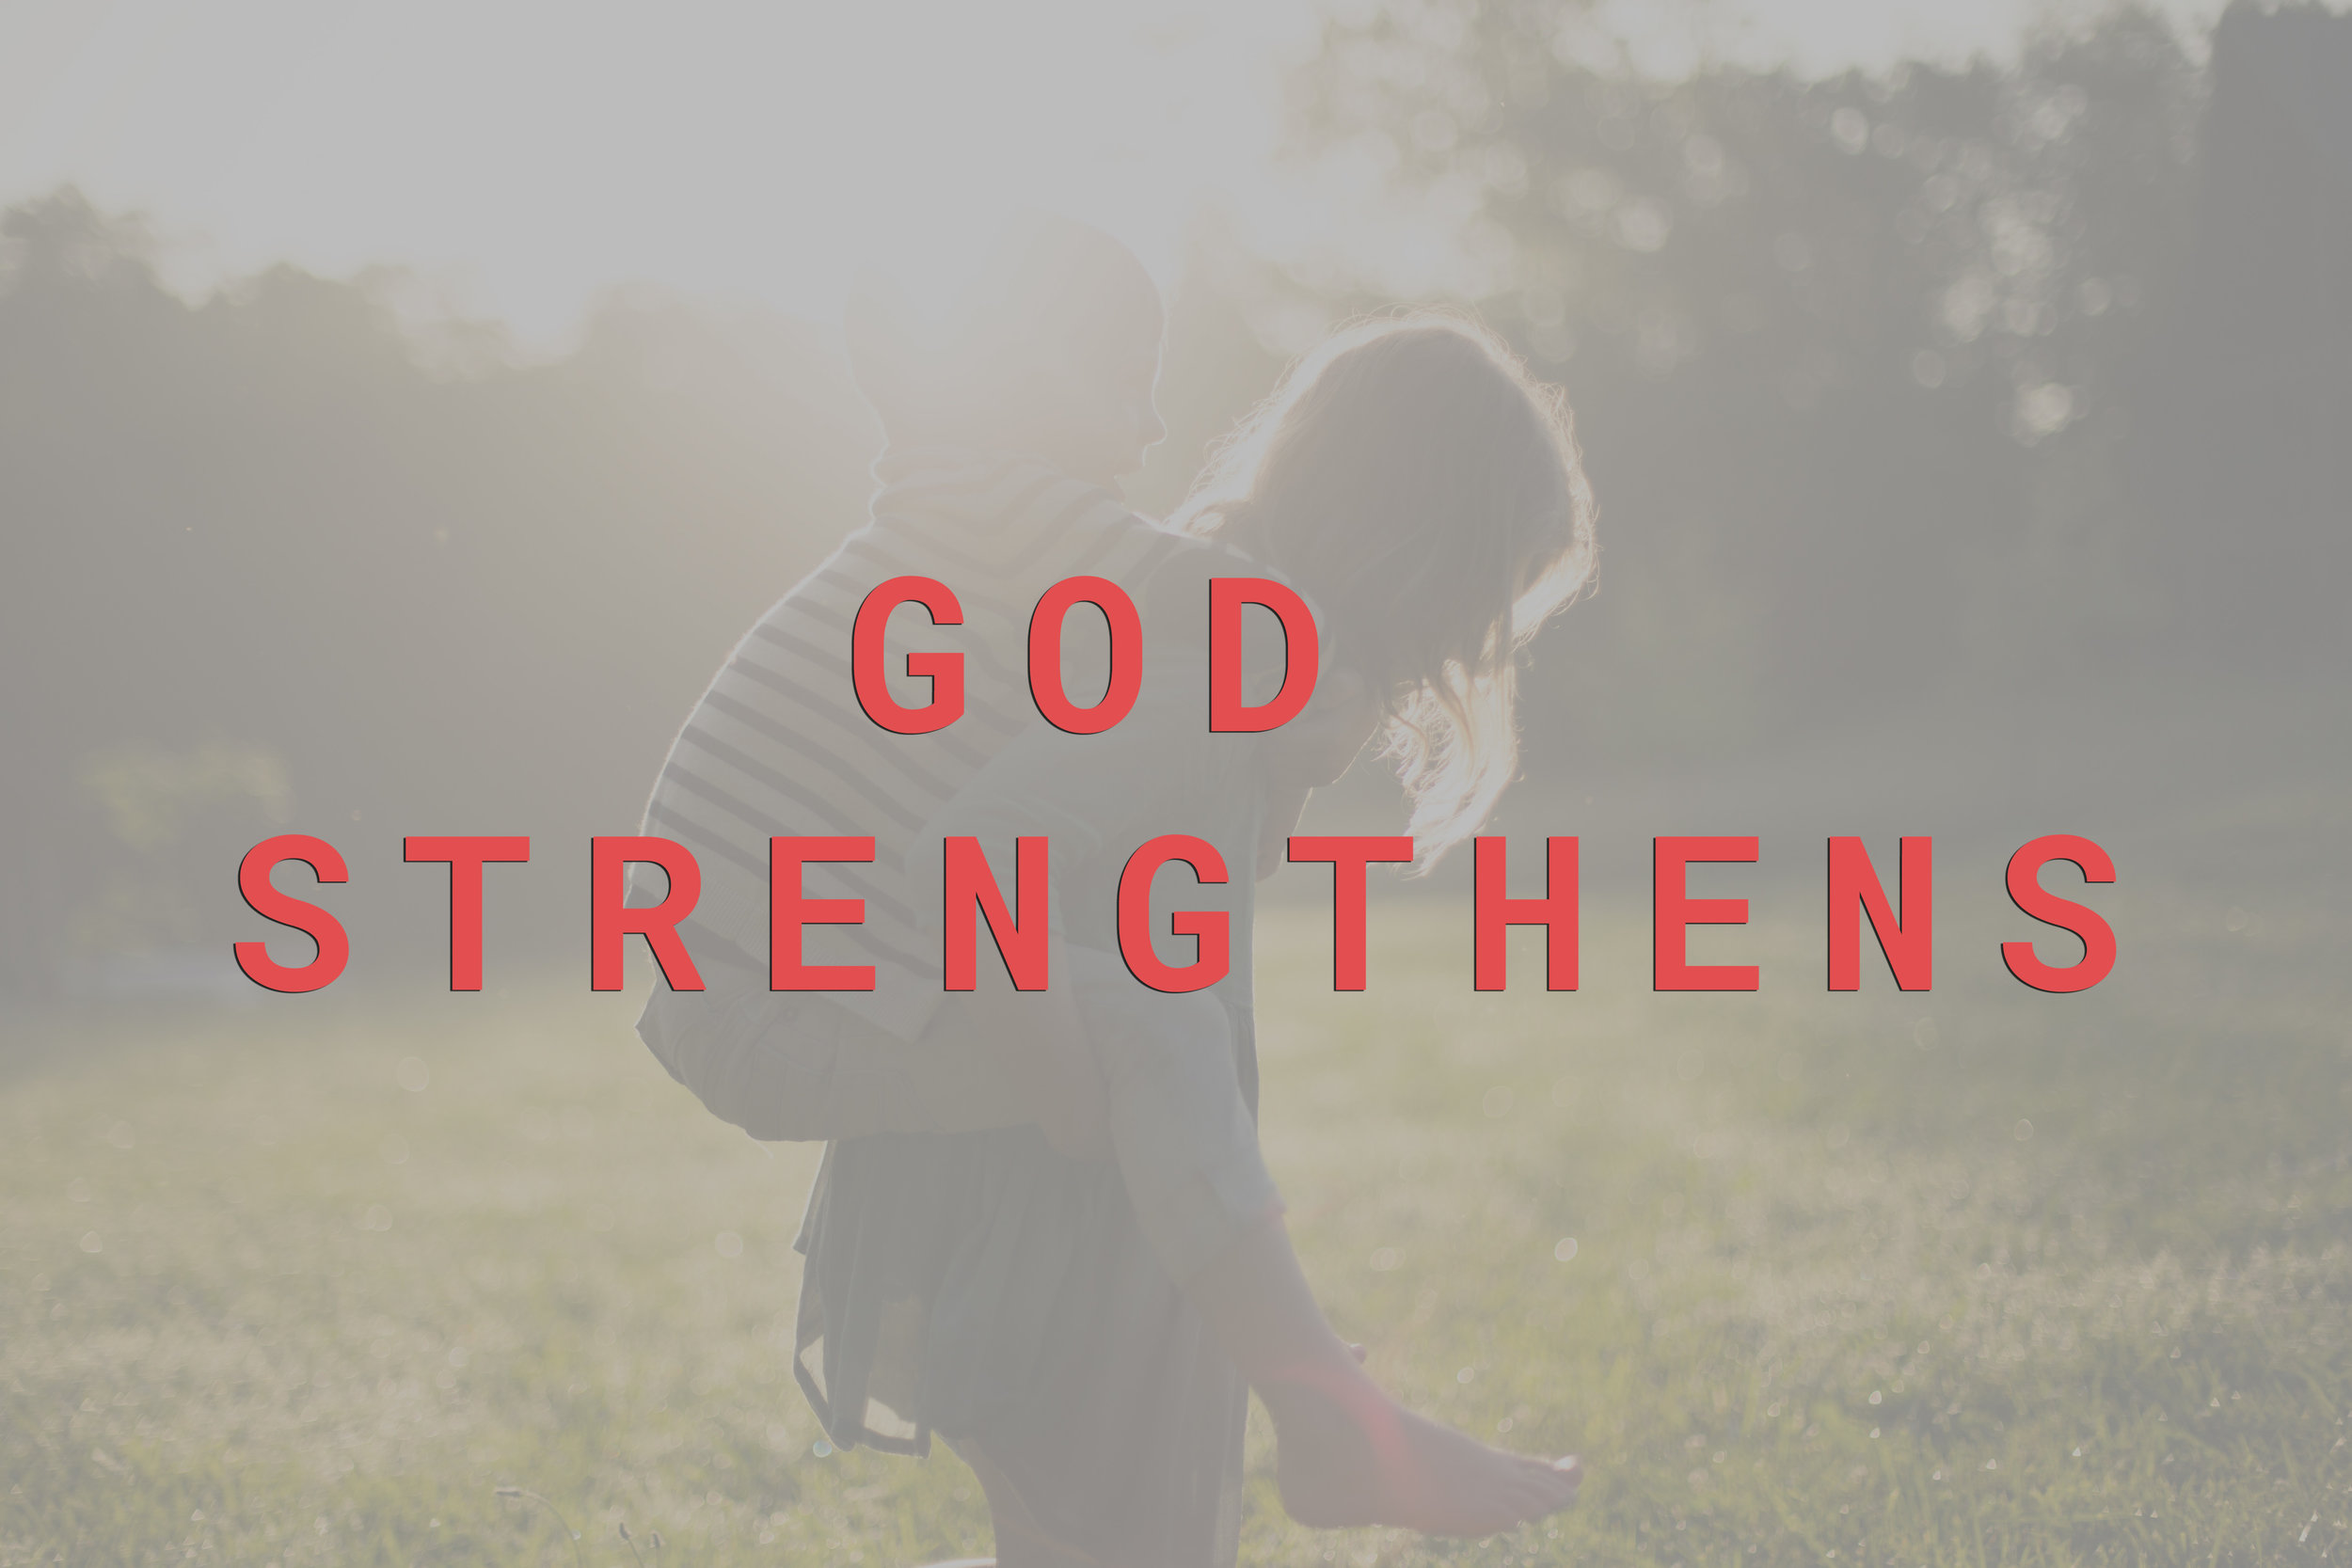 god strengthens.jpg